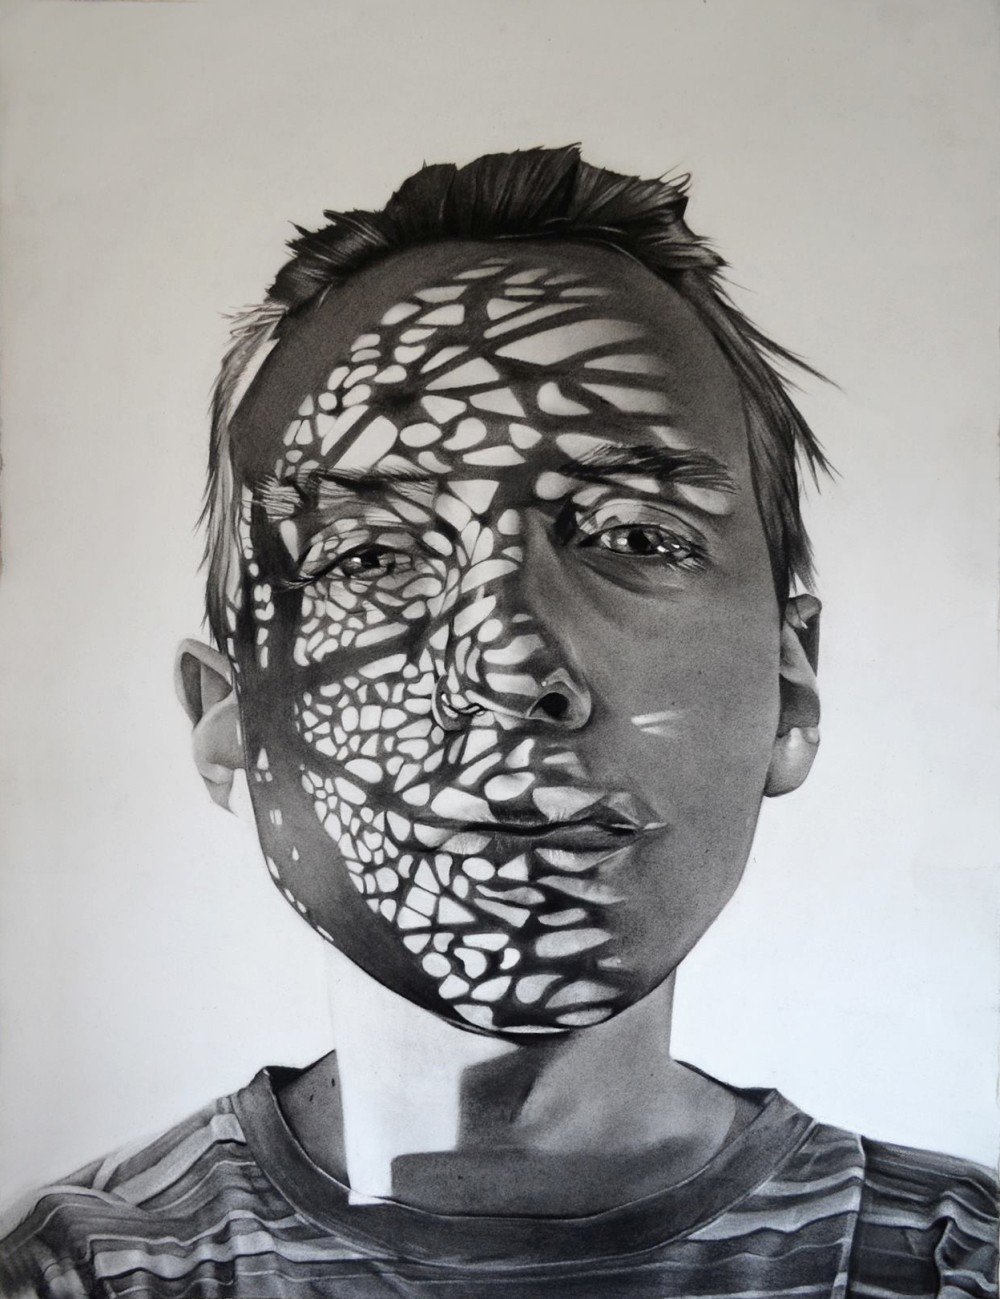 Dylan Andrews-charcoal-Drawings-portraits 547lmk